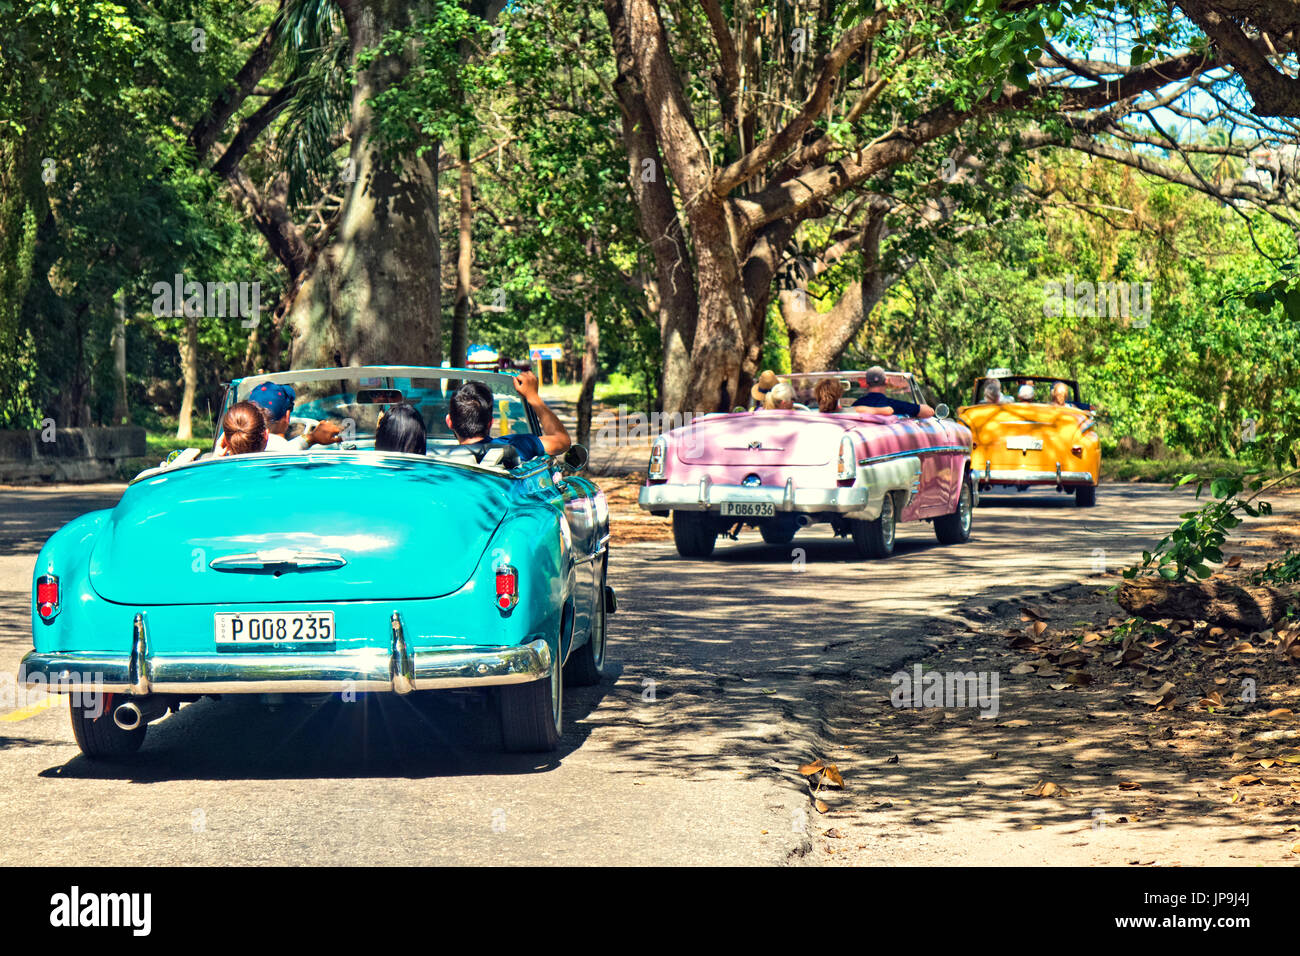 Classic cars drive through a forested area in Havana, Cuba. - Stock Image